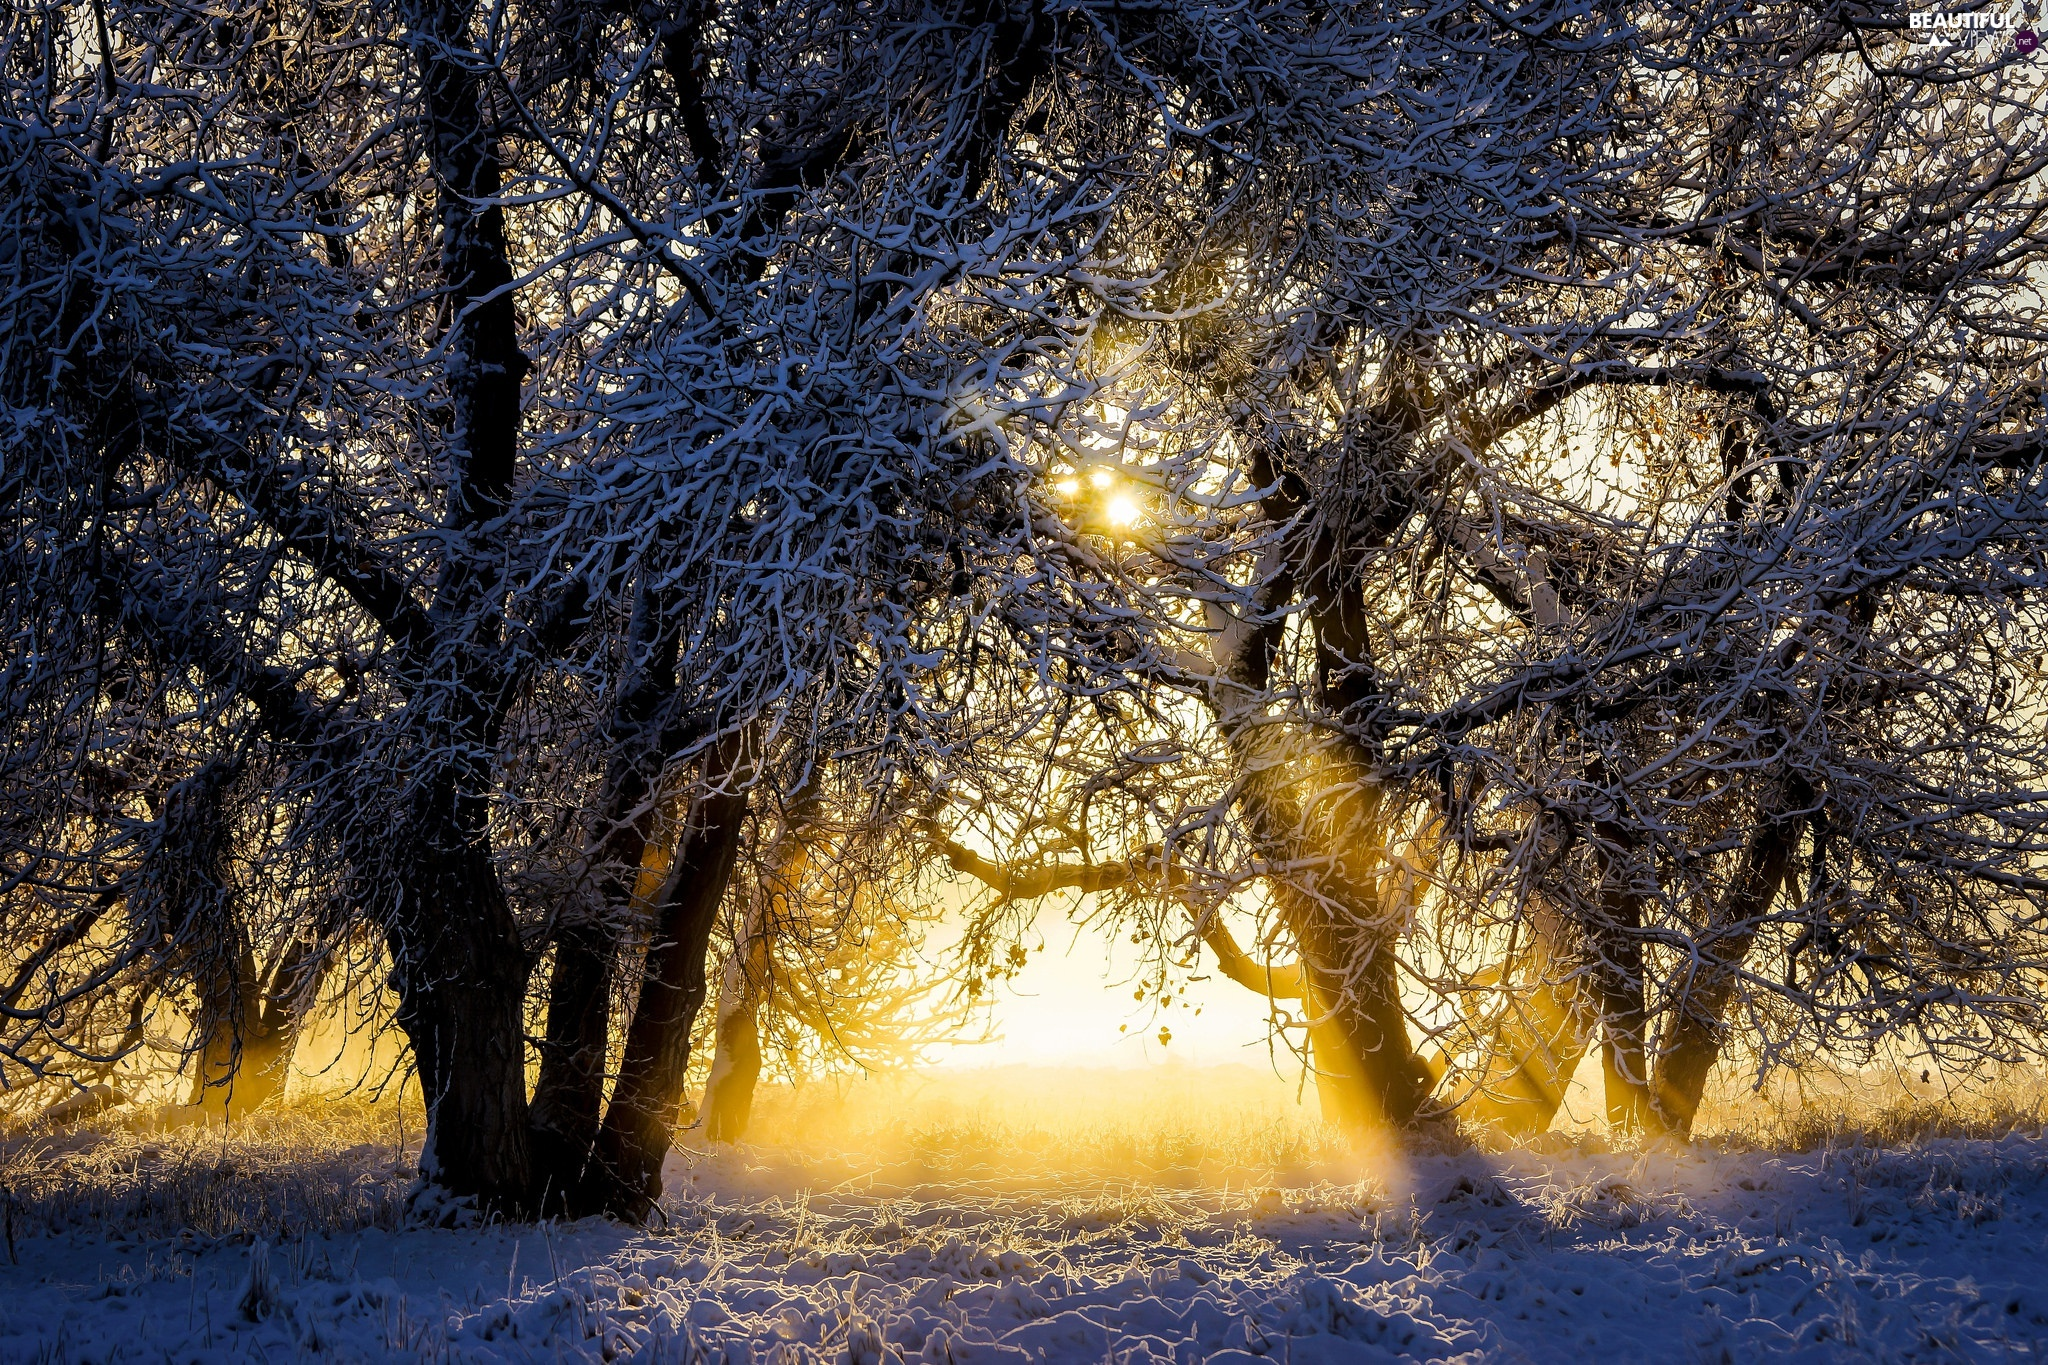 trees, viewes, light breaking through sky, Snowy, winter